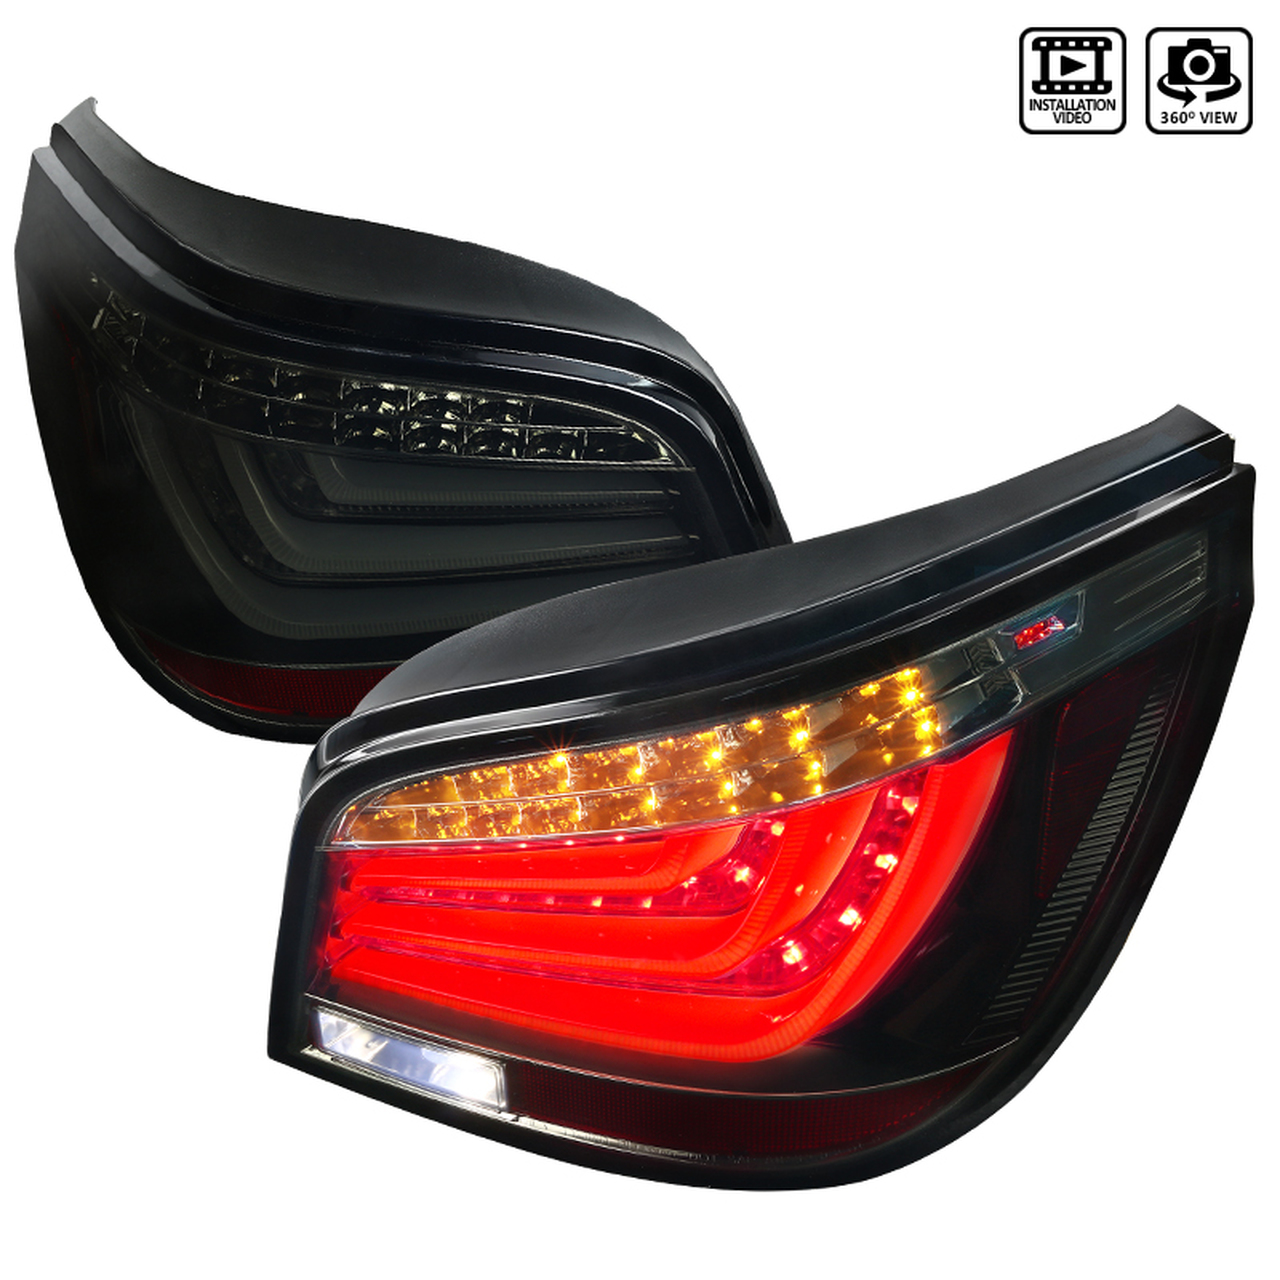 Spec-D Tuning Smoke LED Tail Lights - Spec-D Tuning LT-E6004BBLED-TM